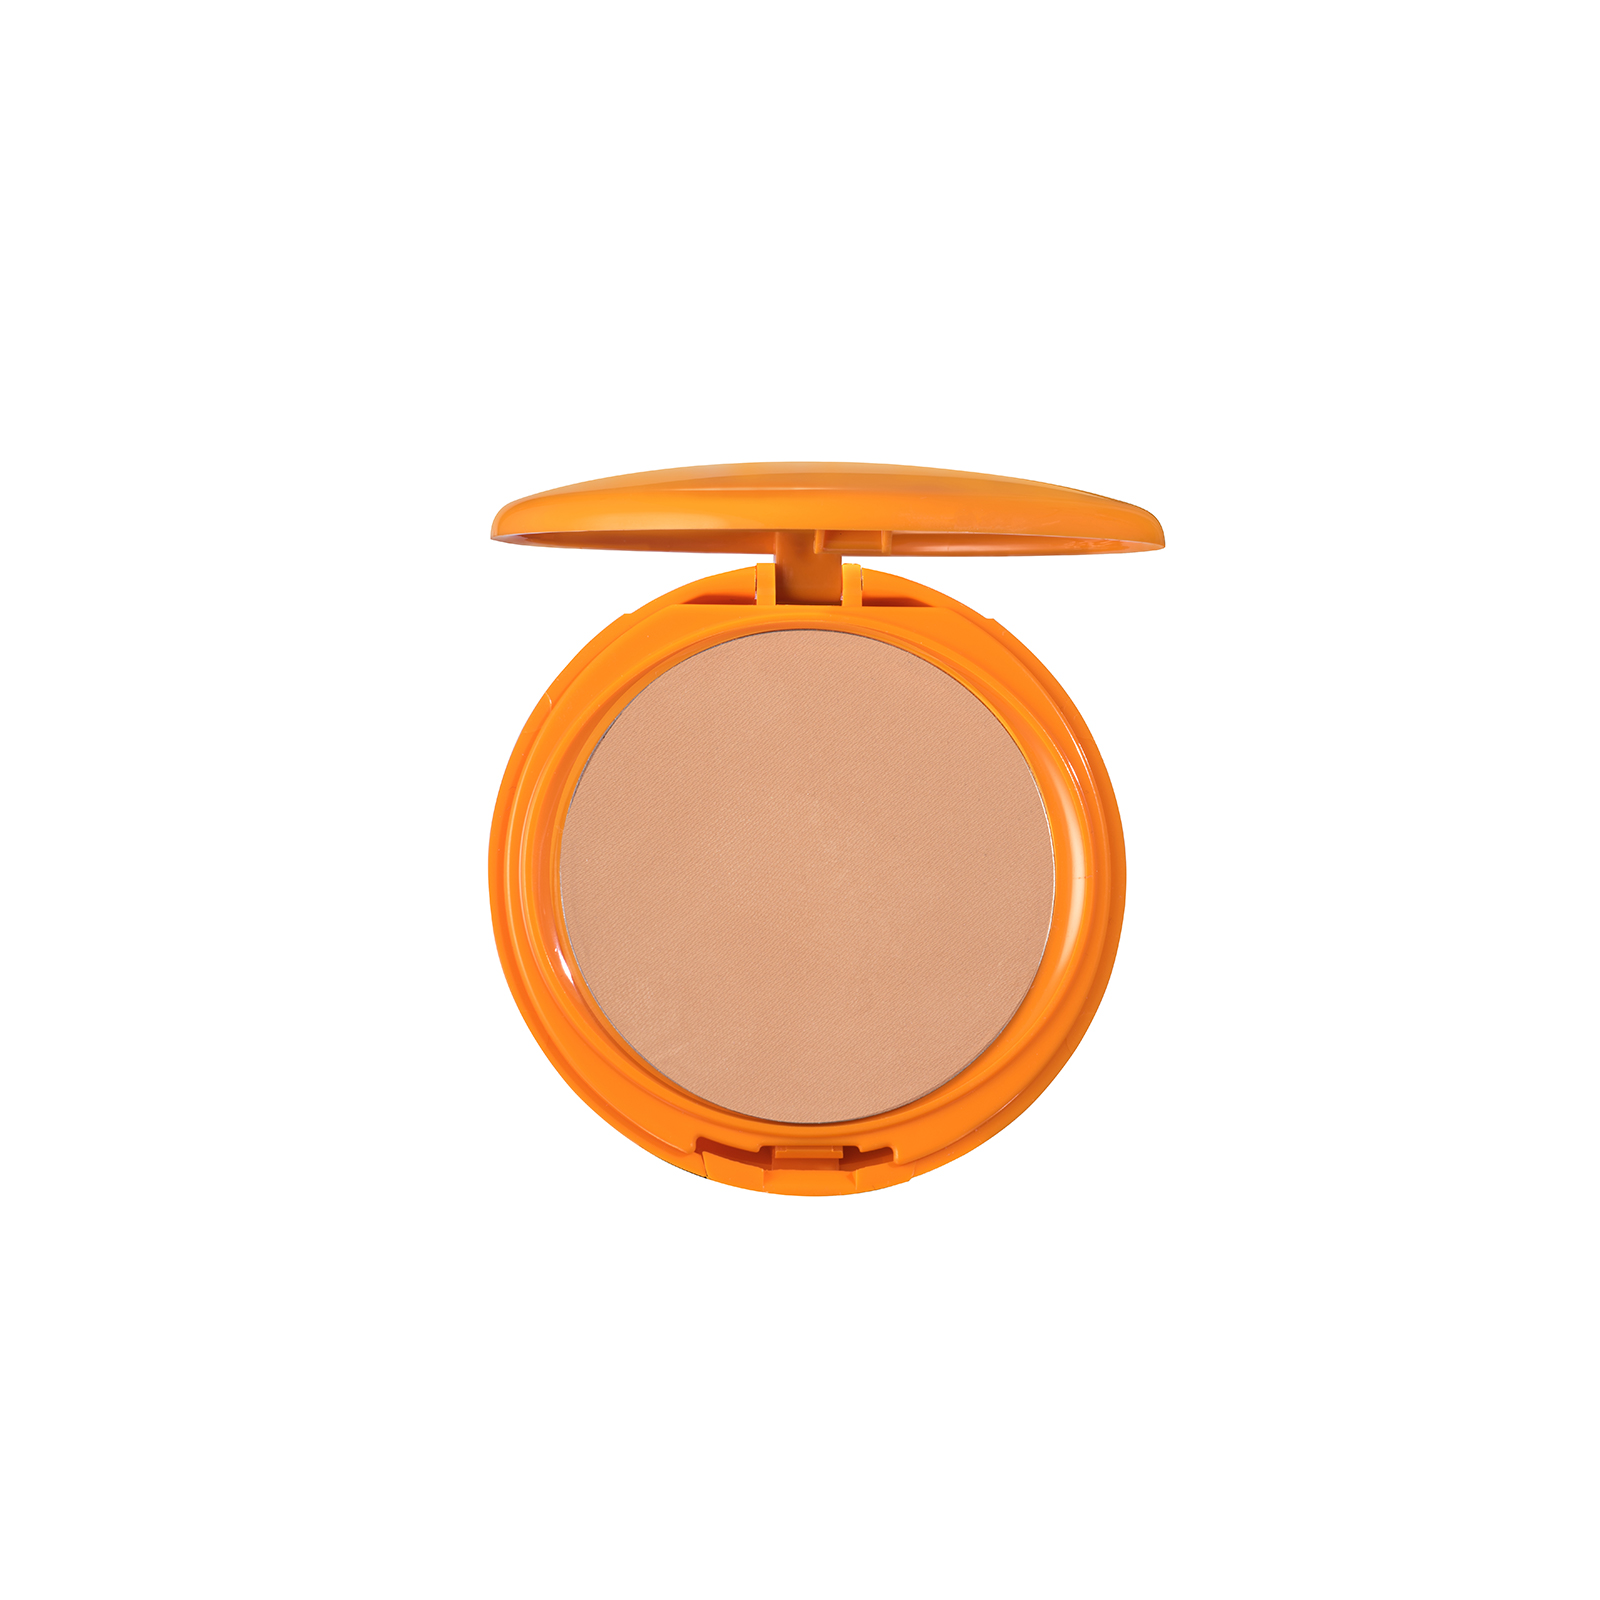 PHOTO AGEING PROTECTION COMPACT POWDER SPF 30 (01 Warm Ivory)